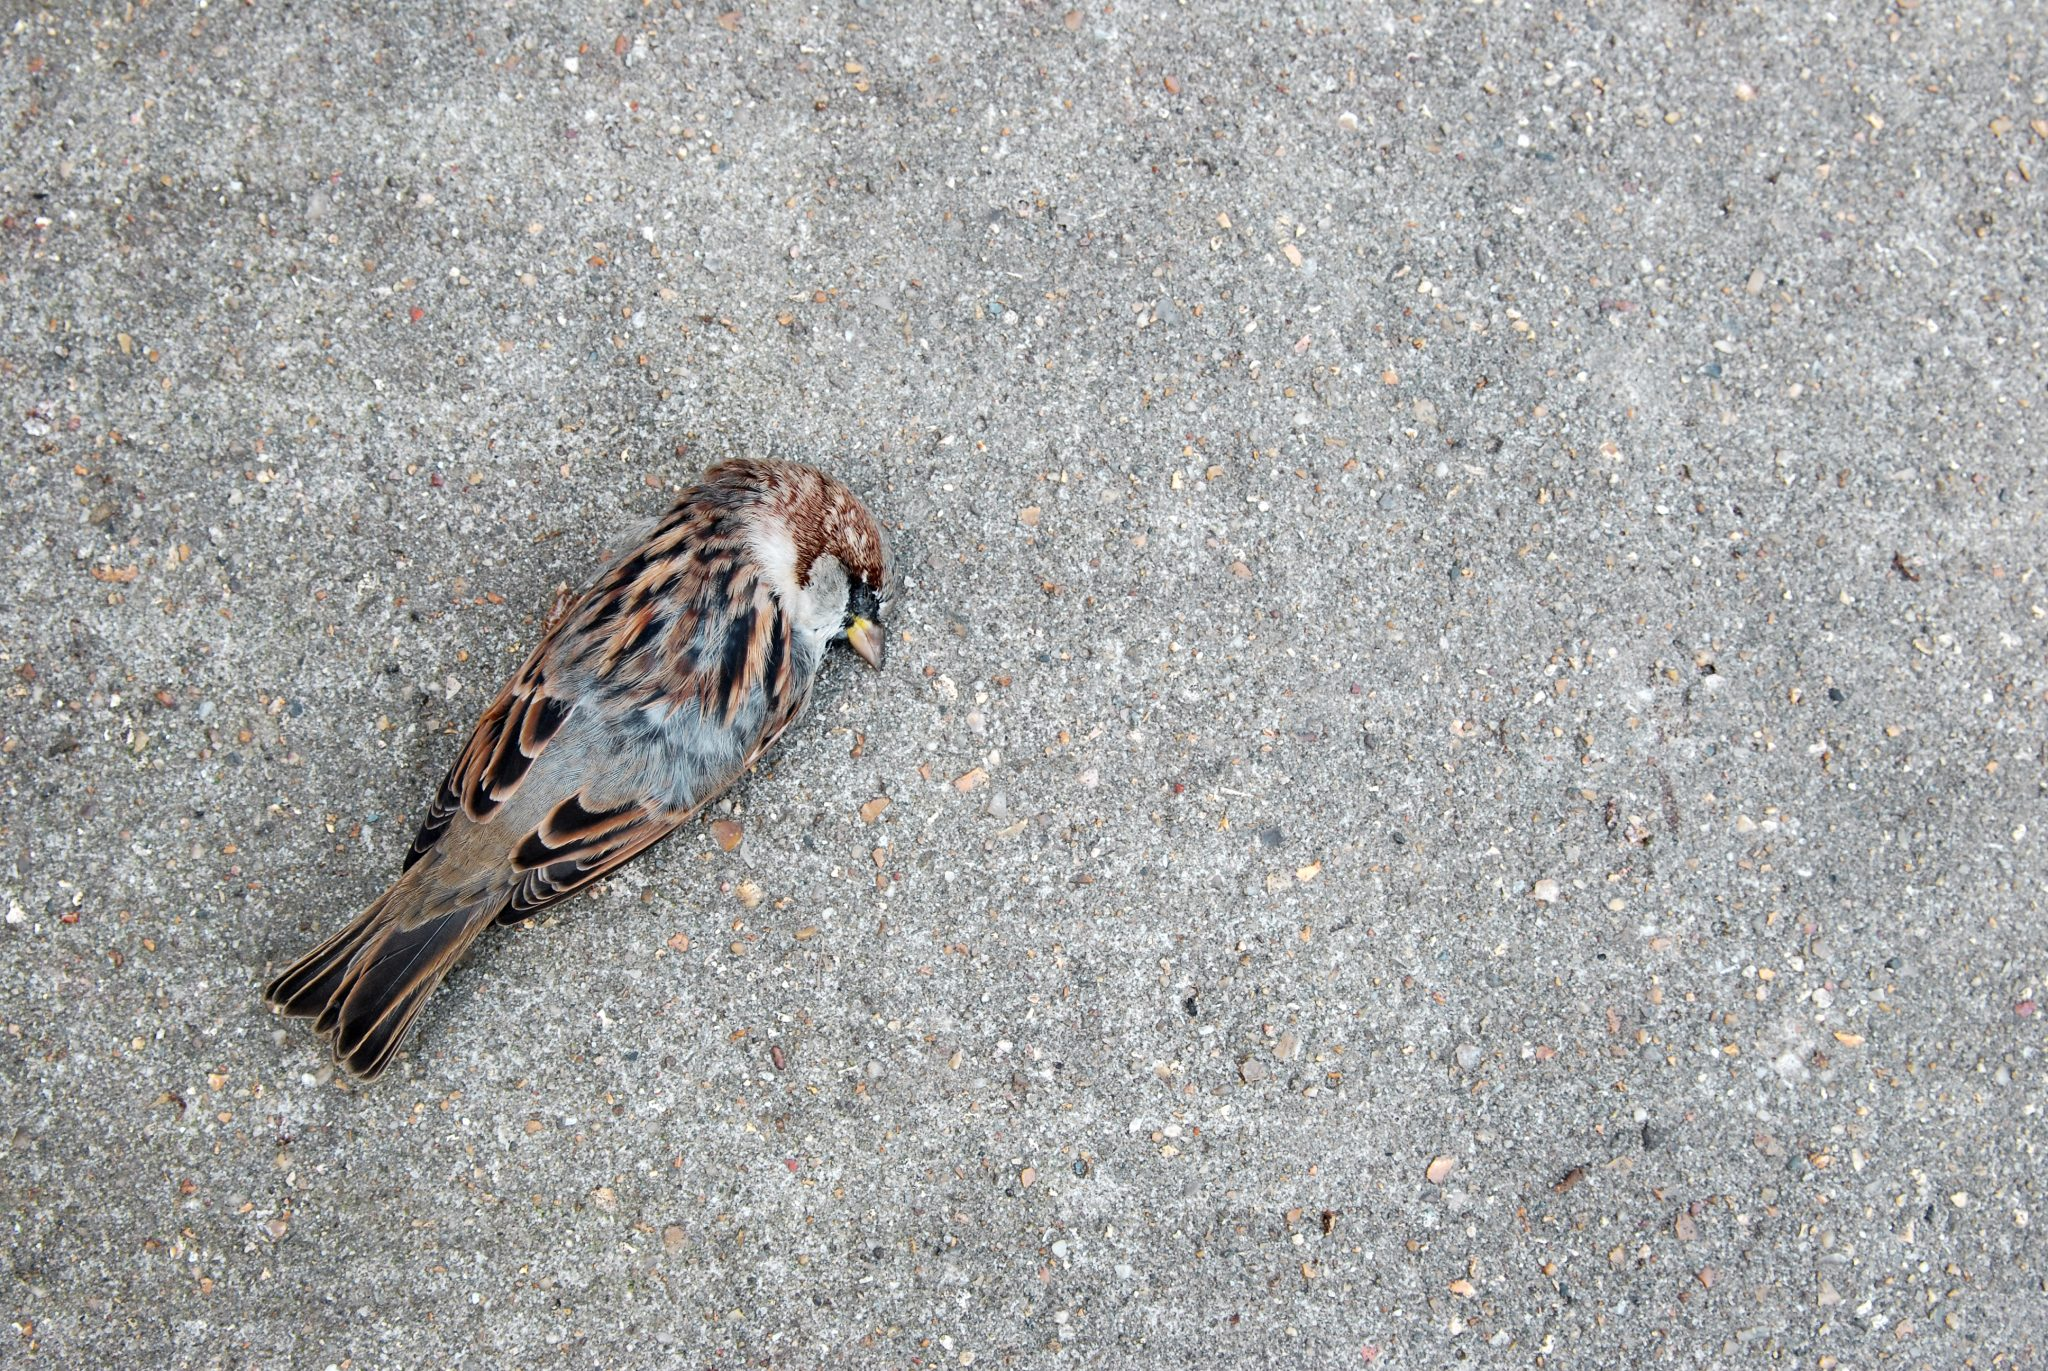 Petition: Over 1,500 Birds Flew into Philly Skyscrapers and Died in One Day